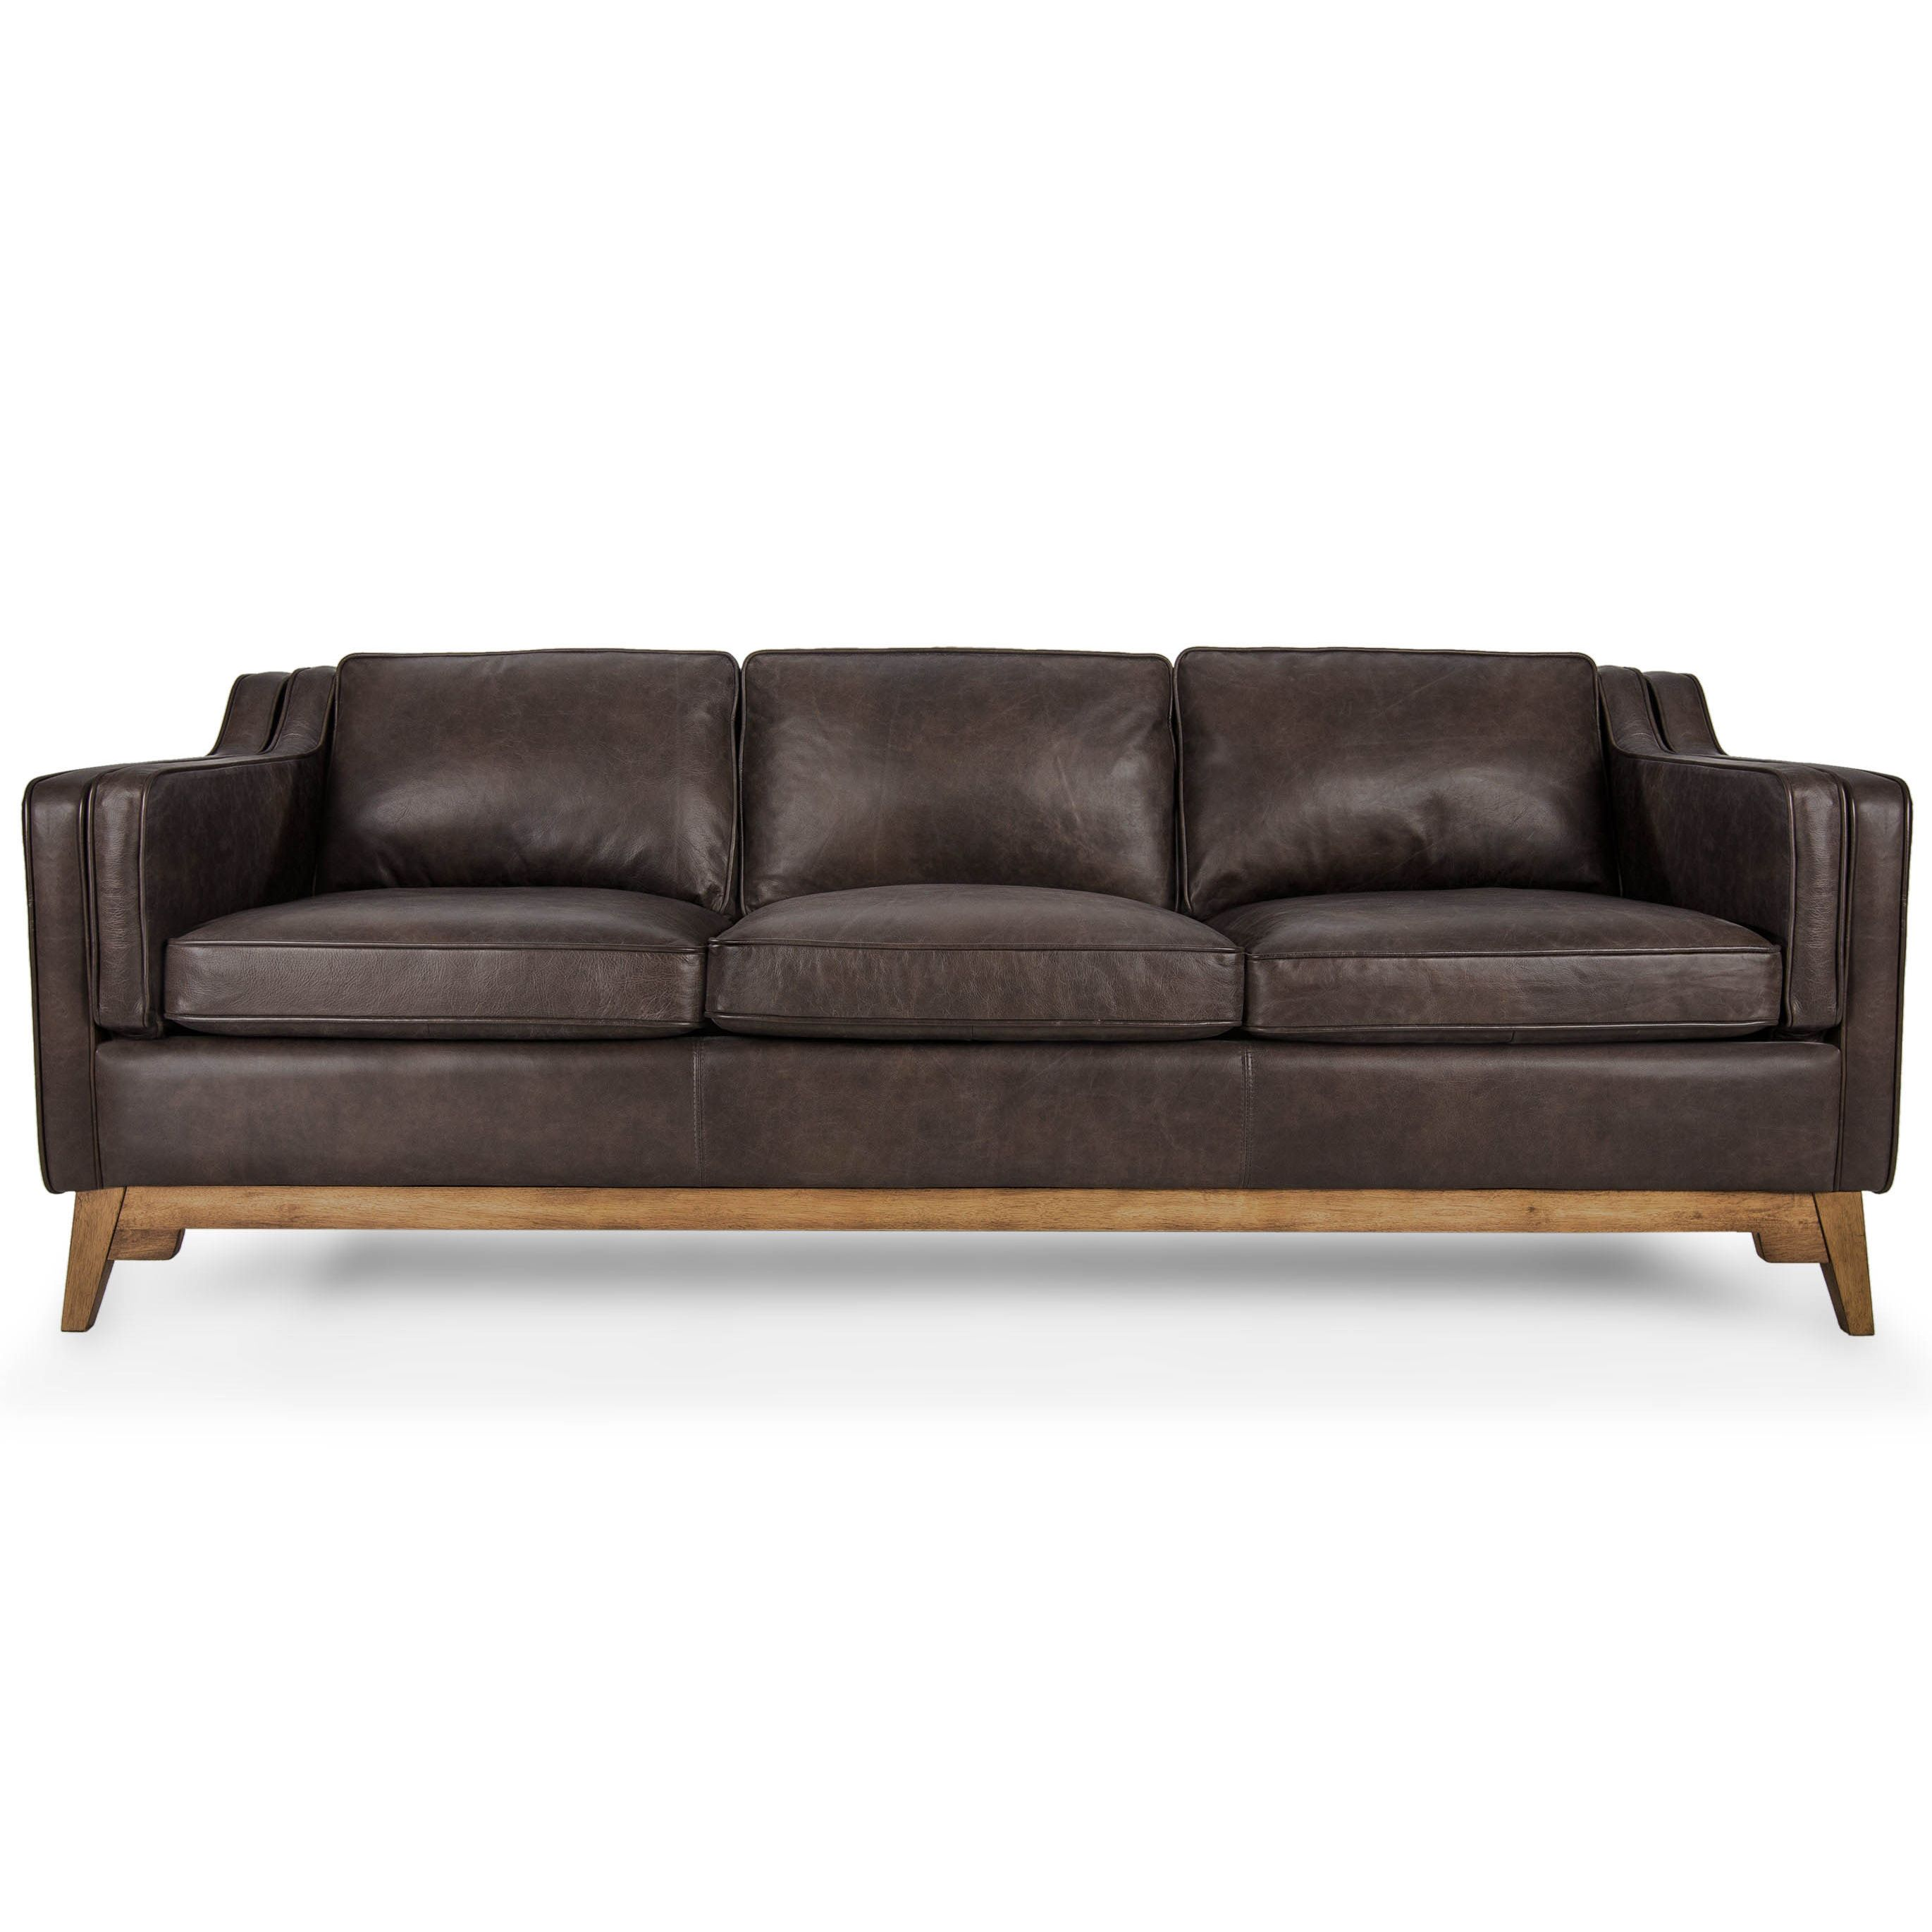 Brown Leather Sofa  Upholstered - Article Worthington Modern Furniture